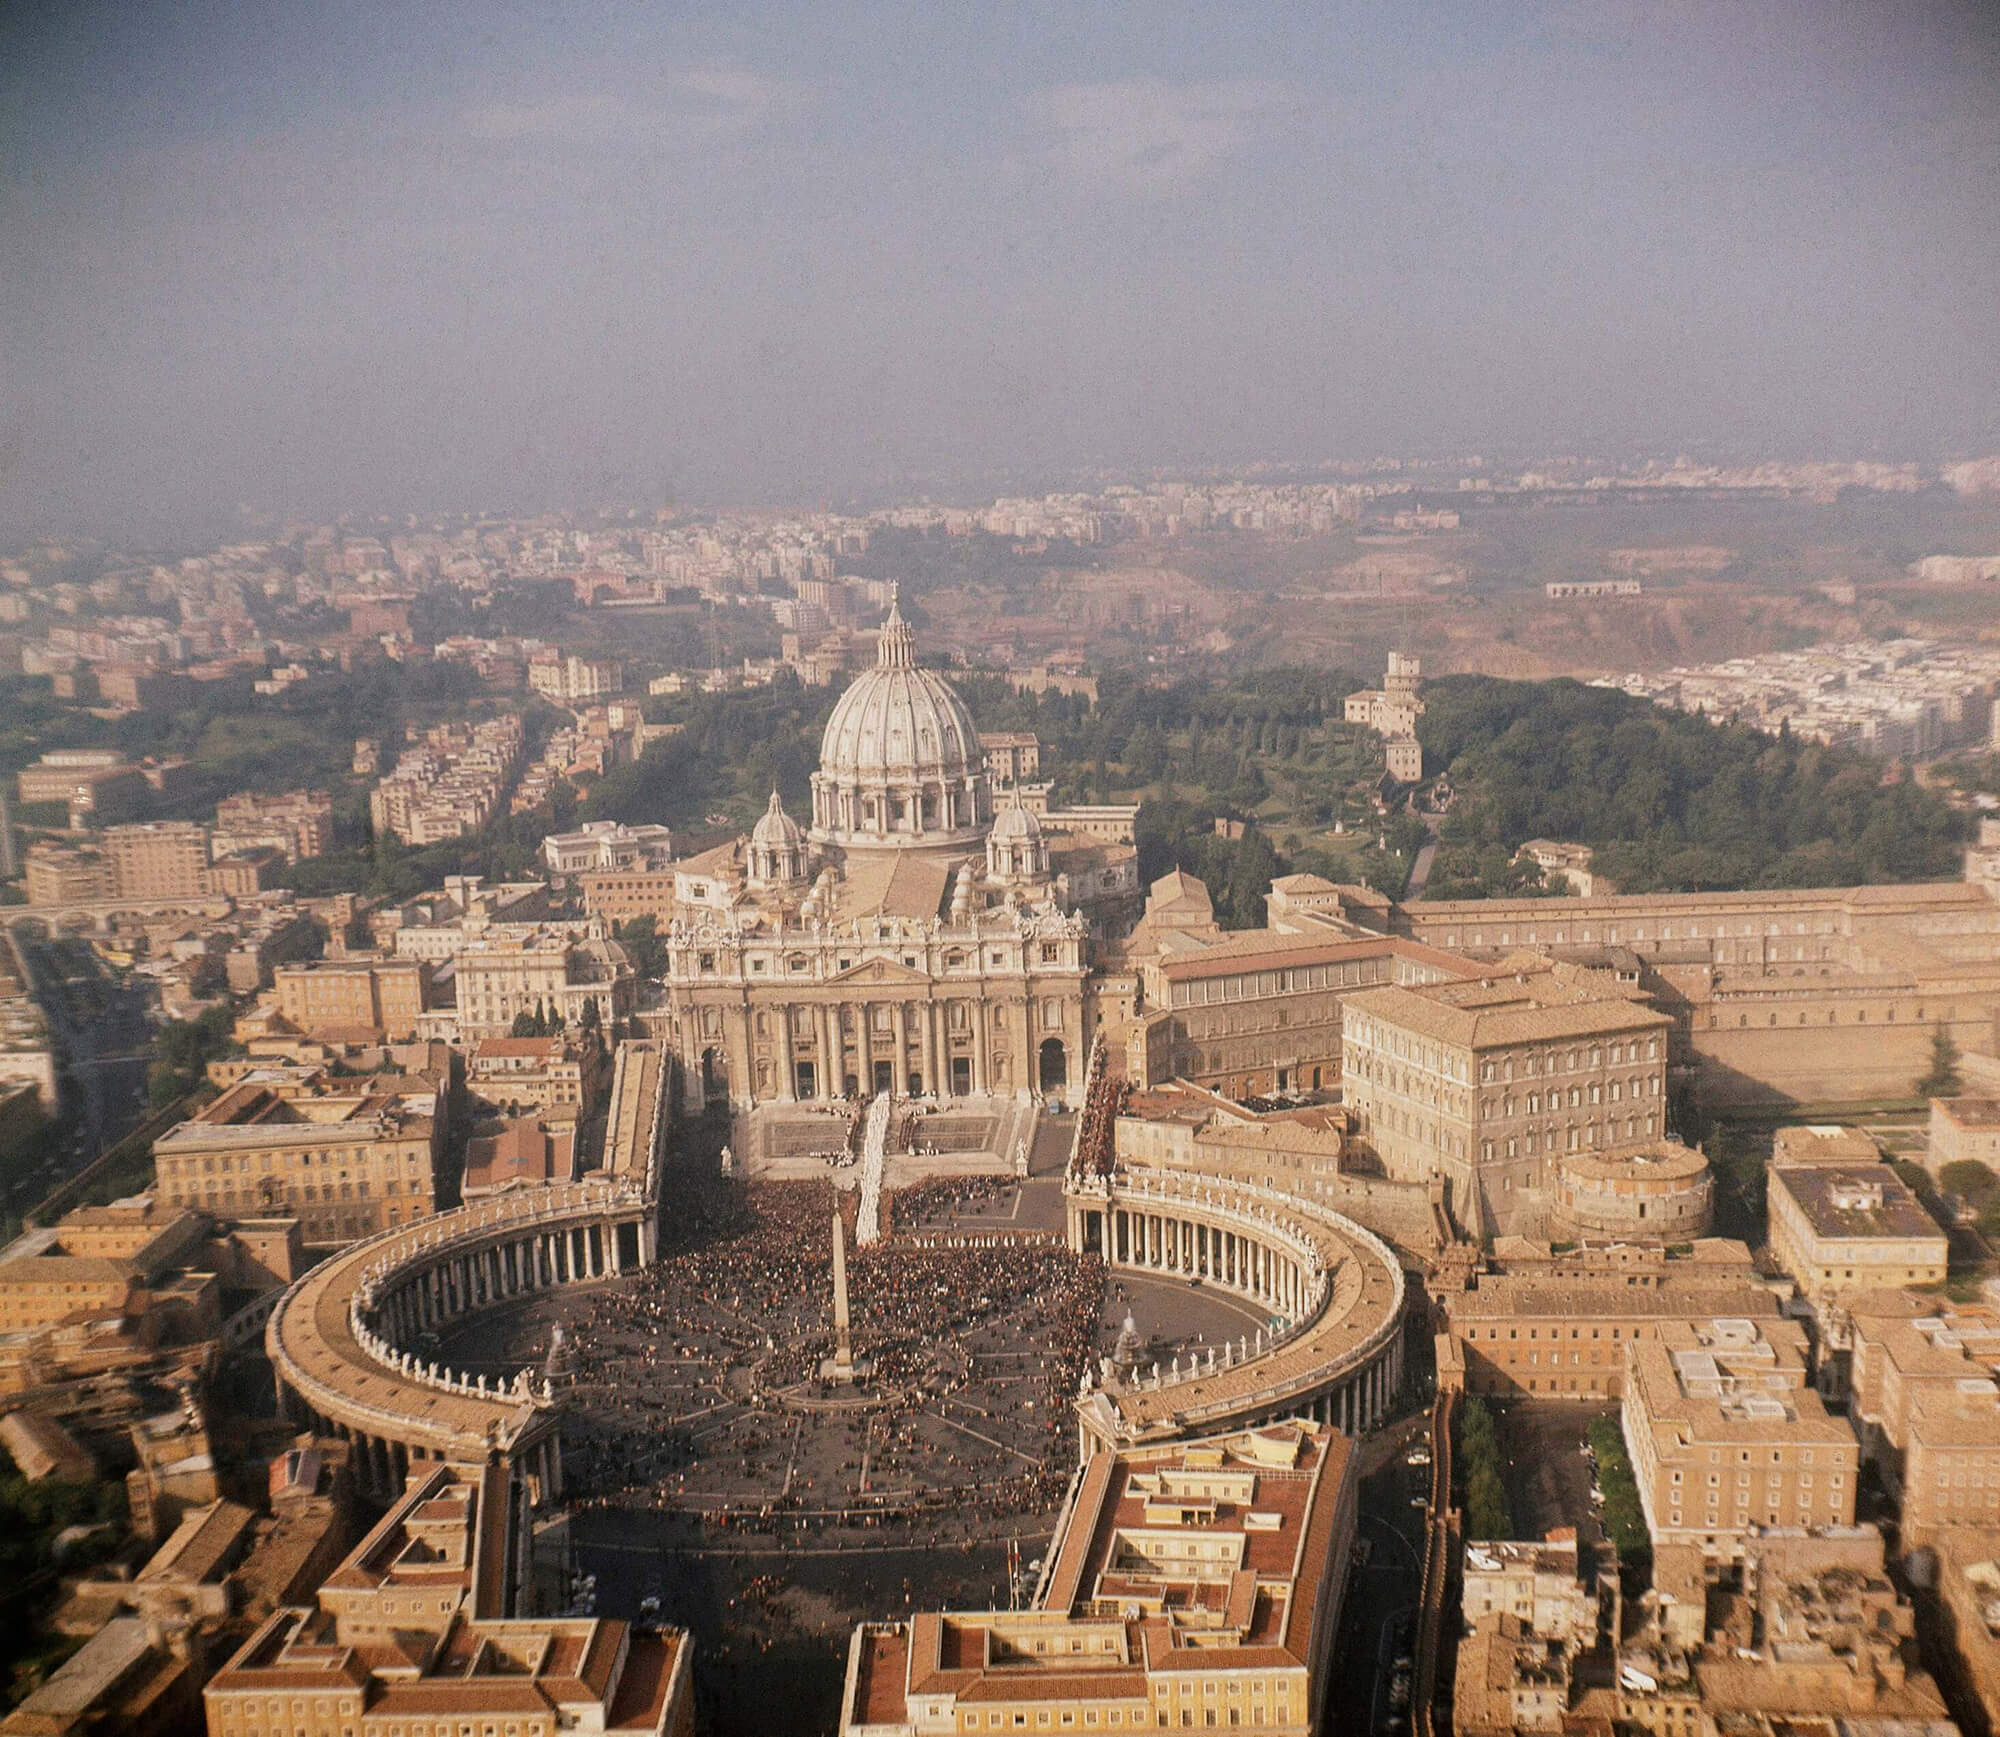 vatican city is less than one square kilometer